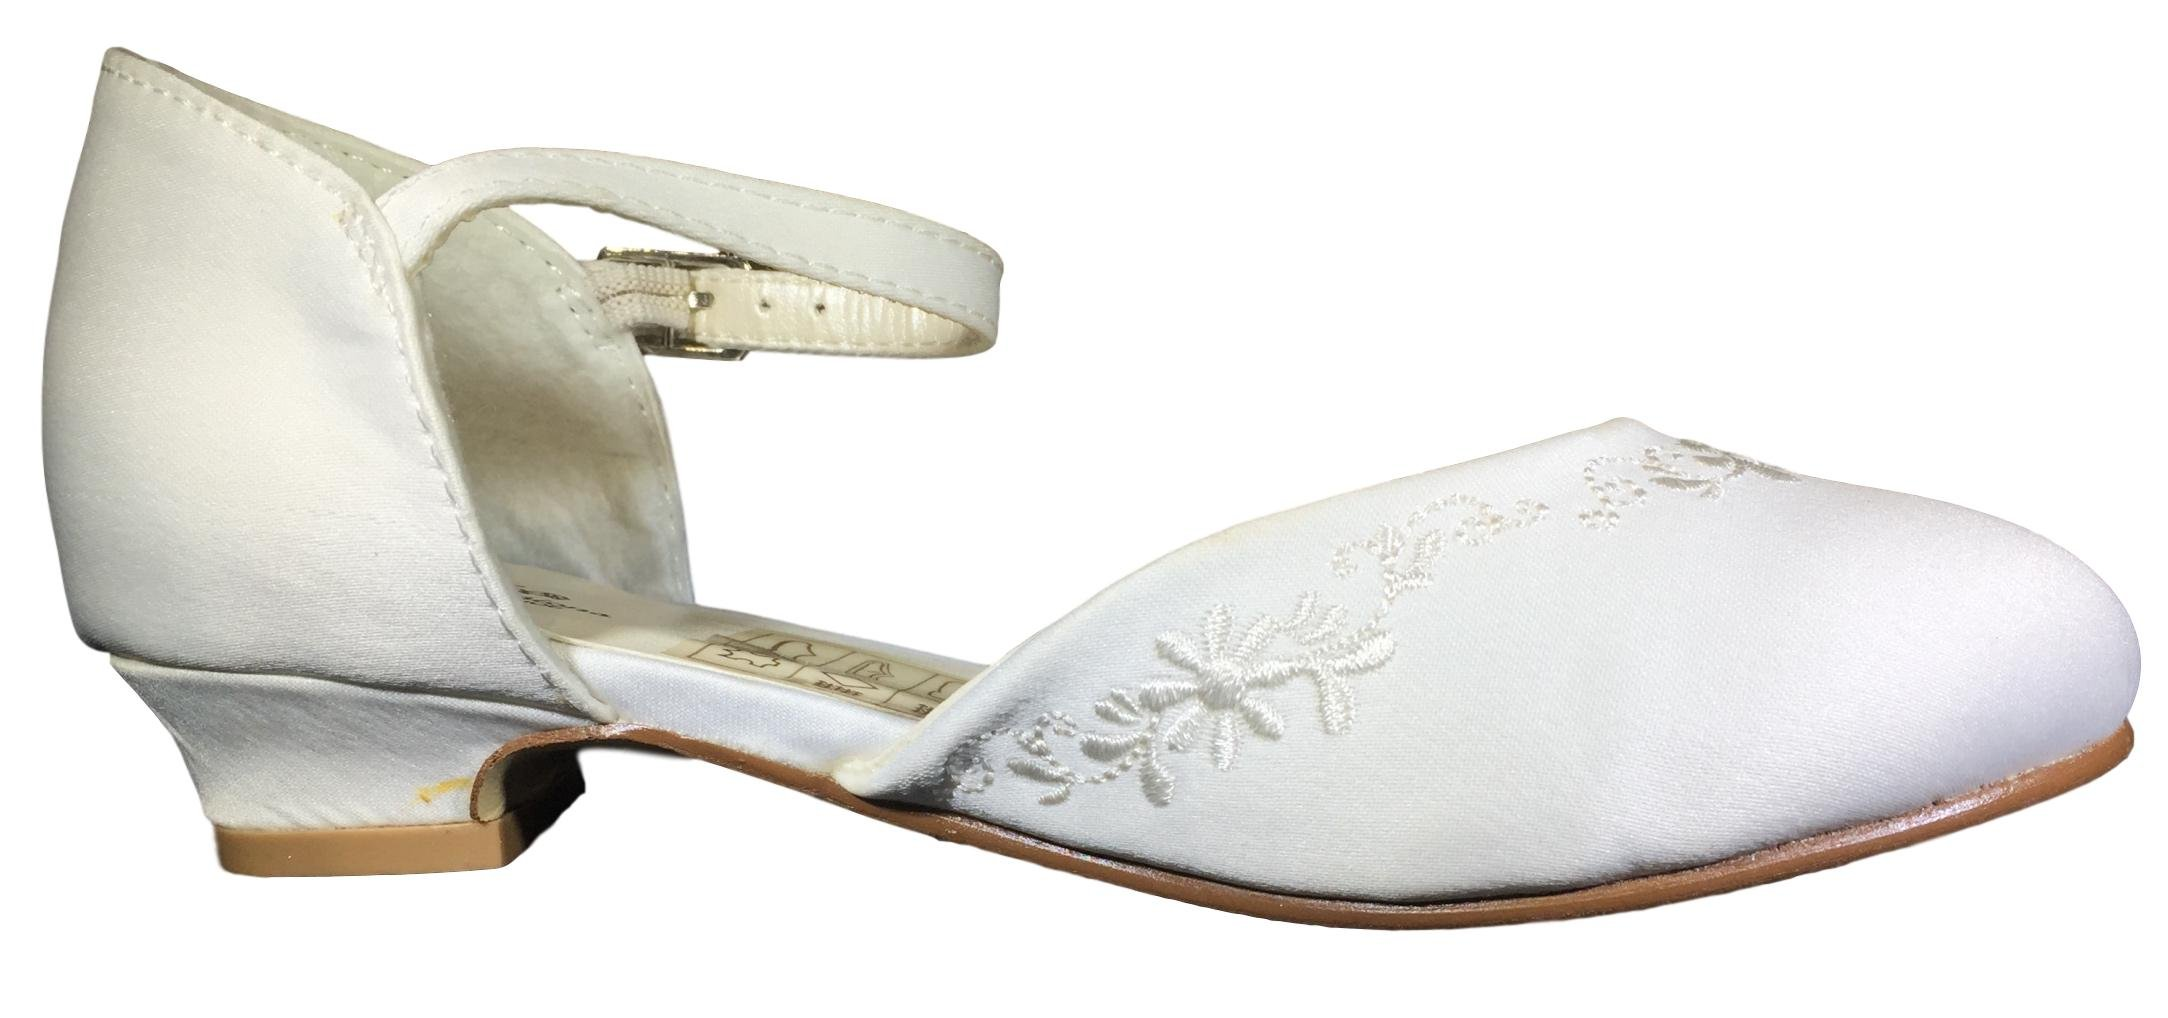 Saugus Girls Shoes Kids Dress Sandal for Wedding and School Event Any Special Occasions #191 (13)